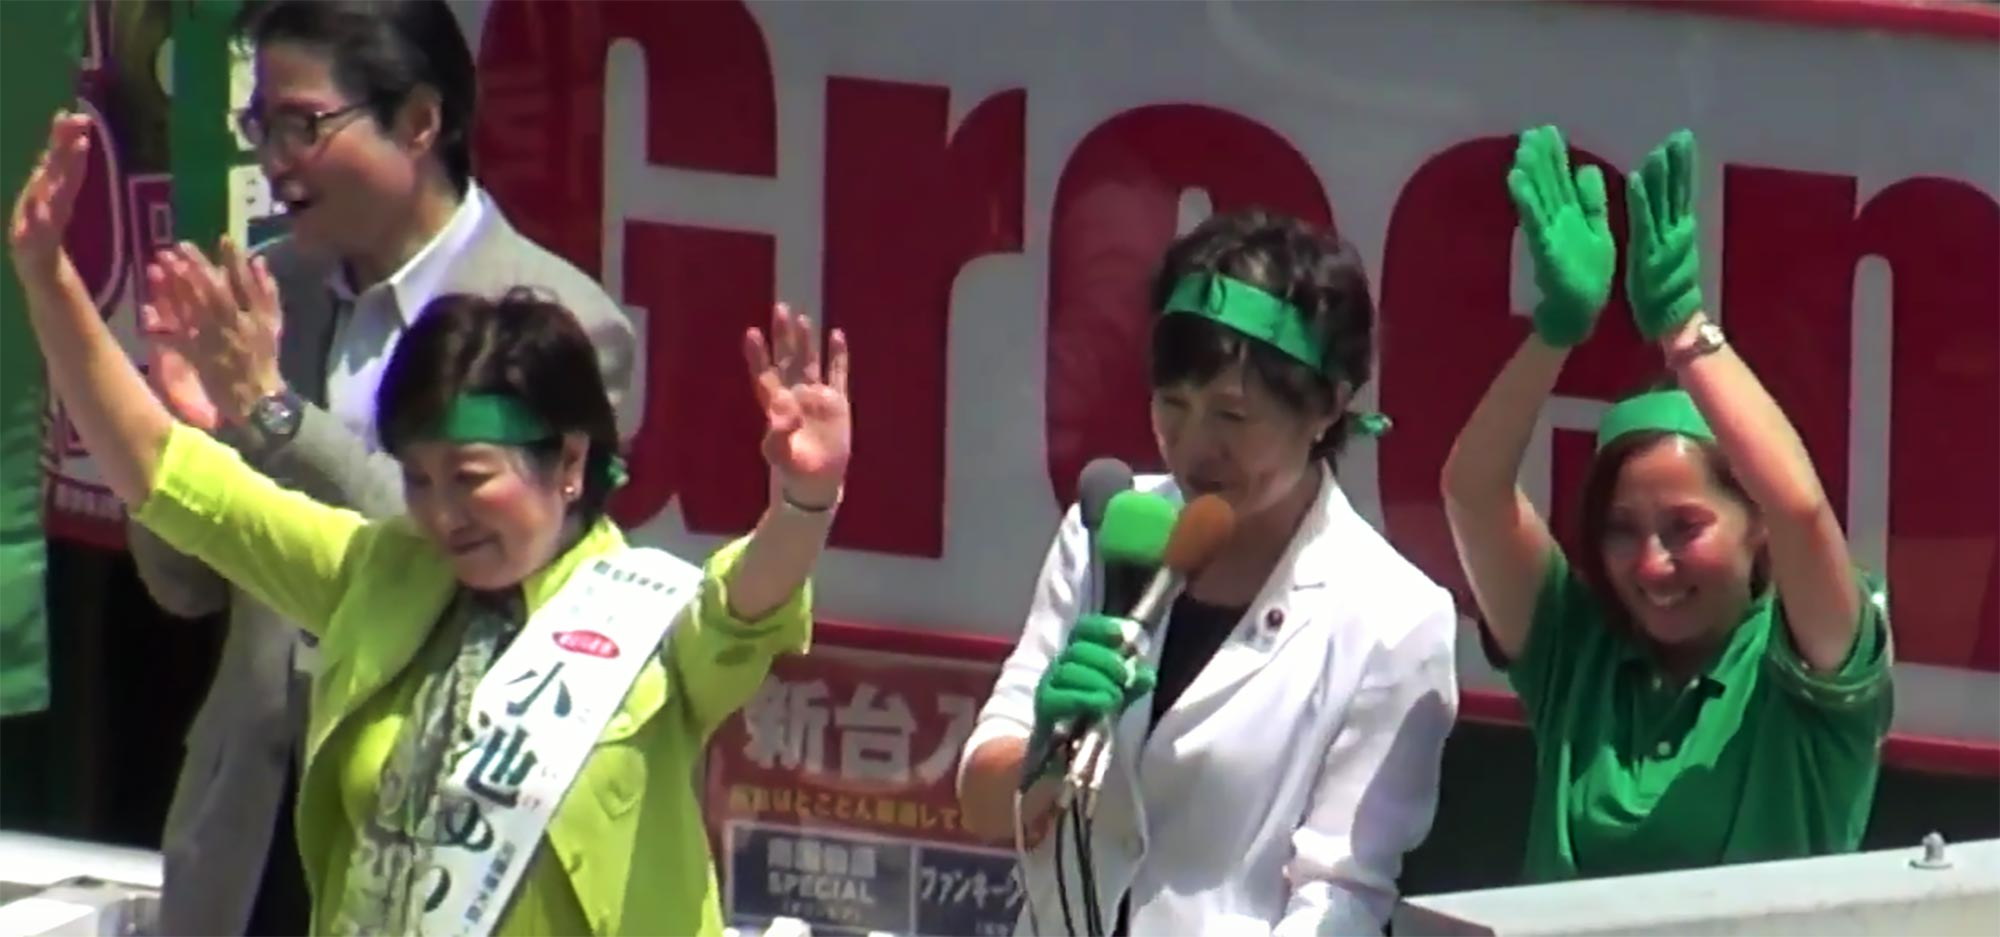 2016日本前衆議院議員及内閣大臣小池百合子競選東京都知事_Former_Member_of_Japanese_House_of_Representatives_and_Cabinet_Minister_Yuriko_Koike_Runs_for_Governor_of_Tokyo_1